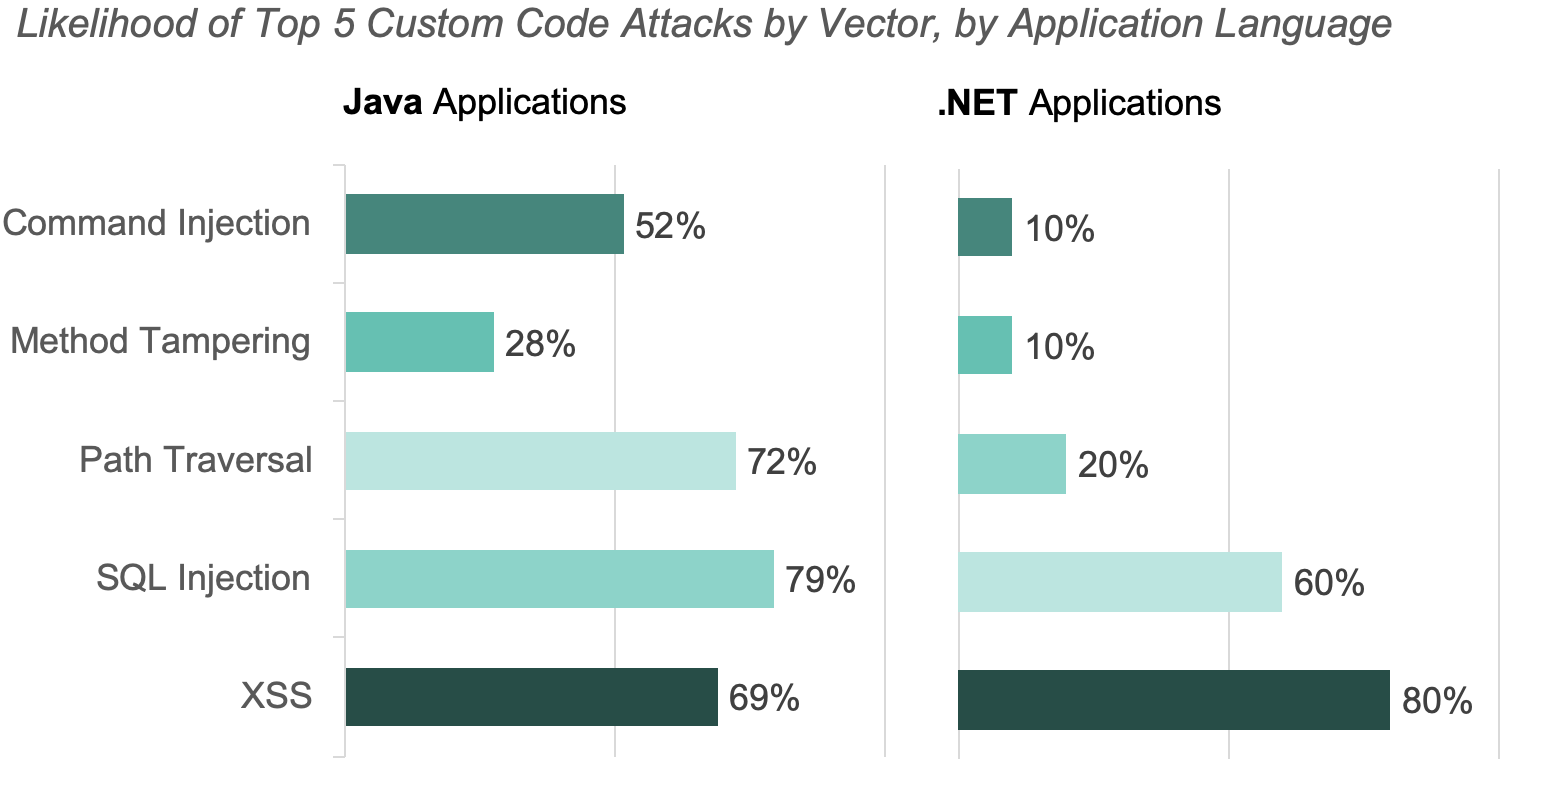 Likelihood of Attacks by Vector and Language